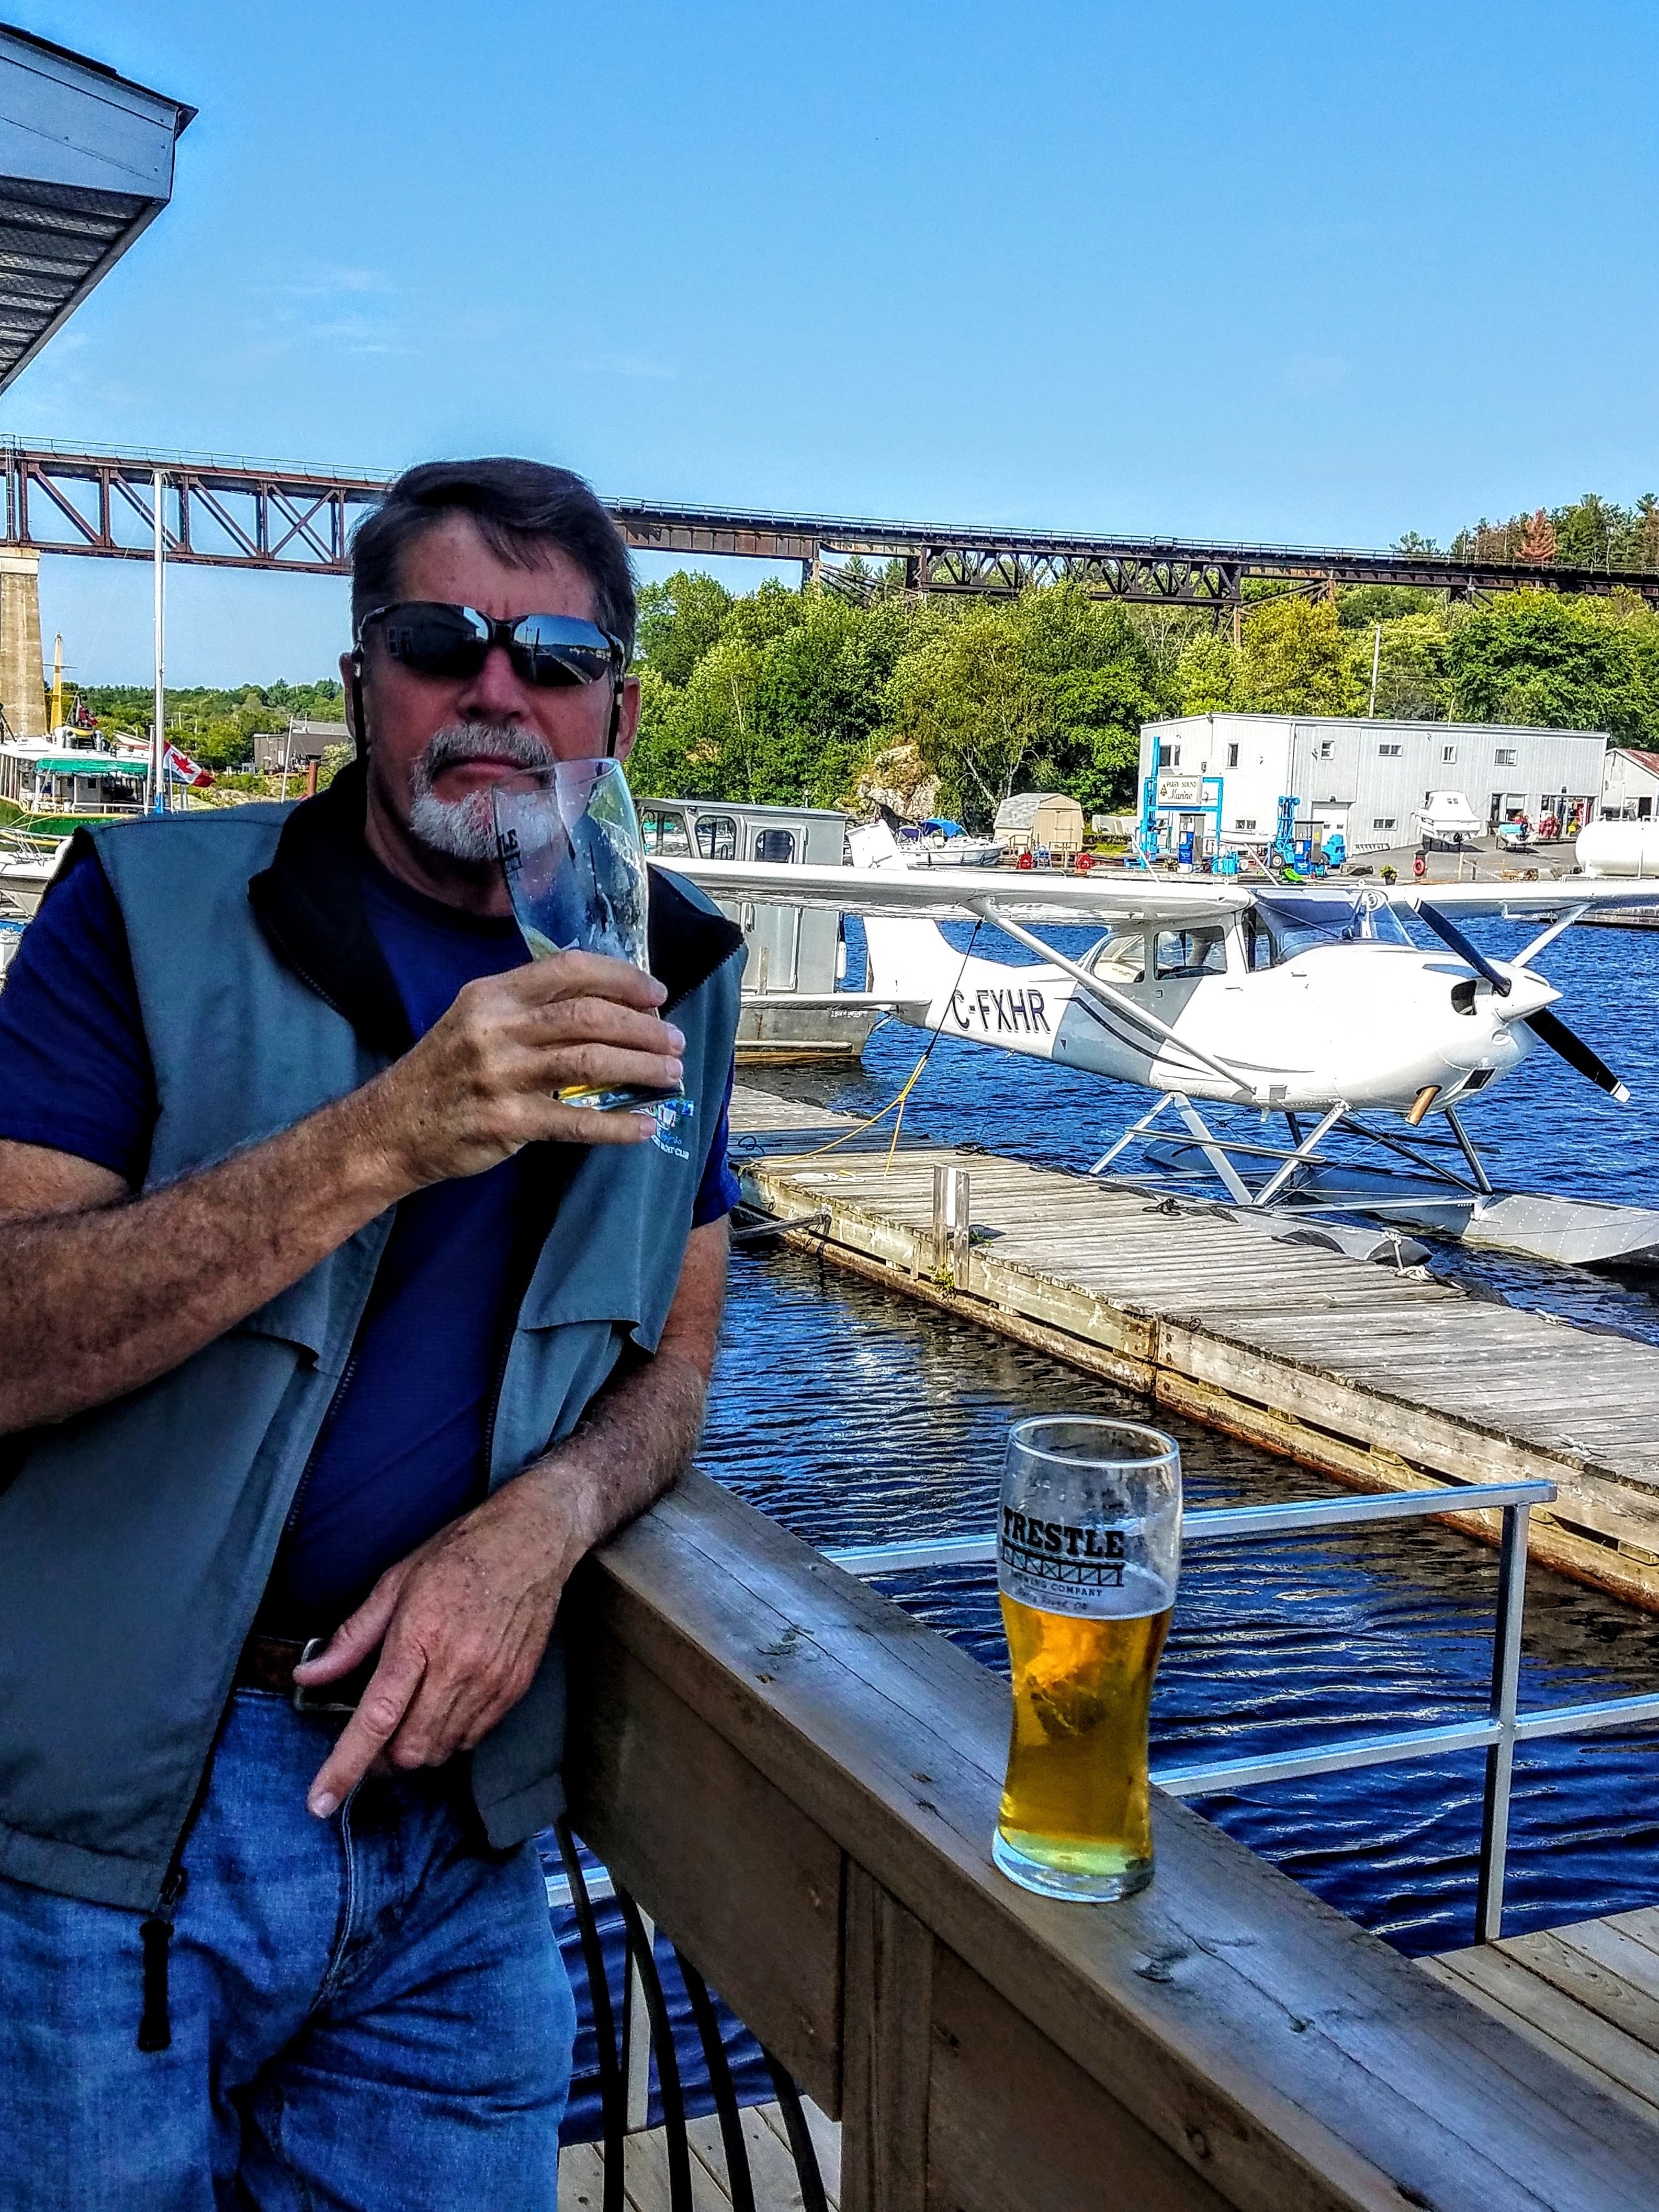 A Trestle Beer in front of the trestle while you await your seaplane tour